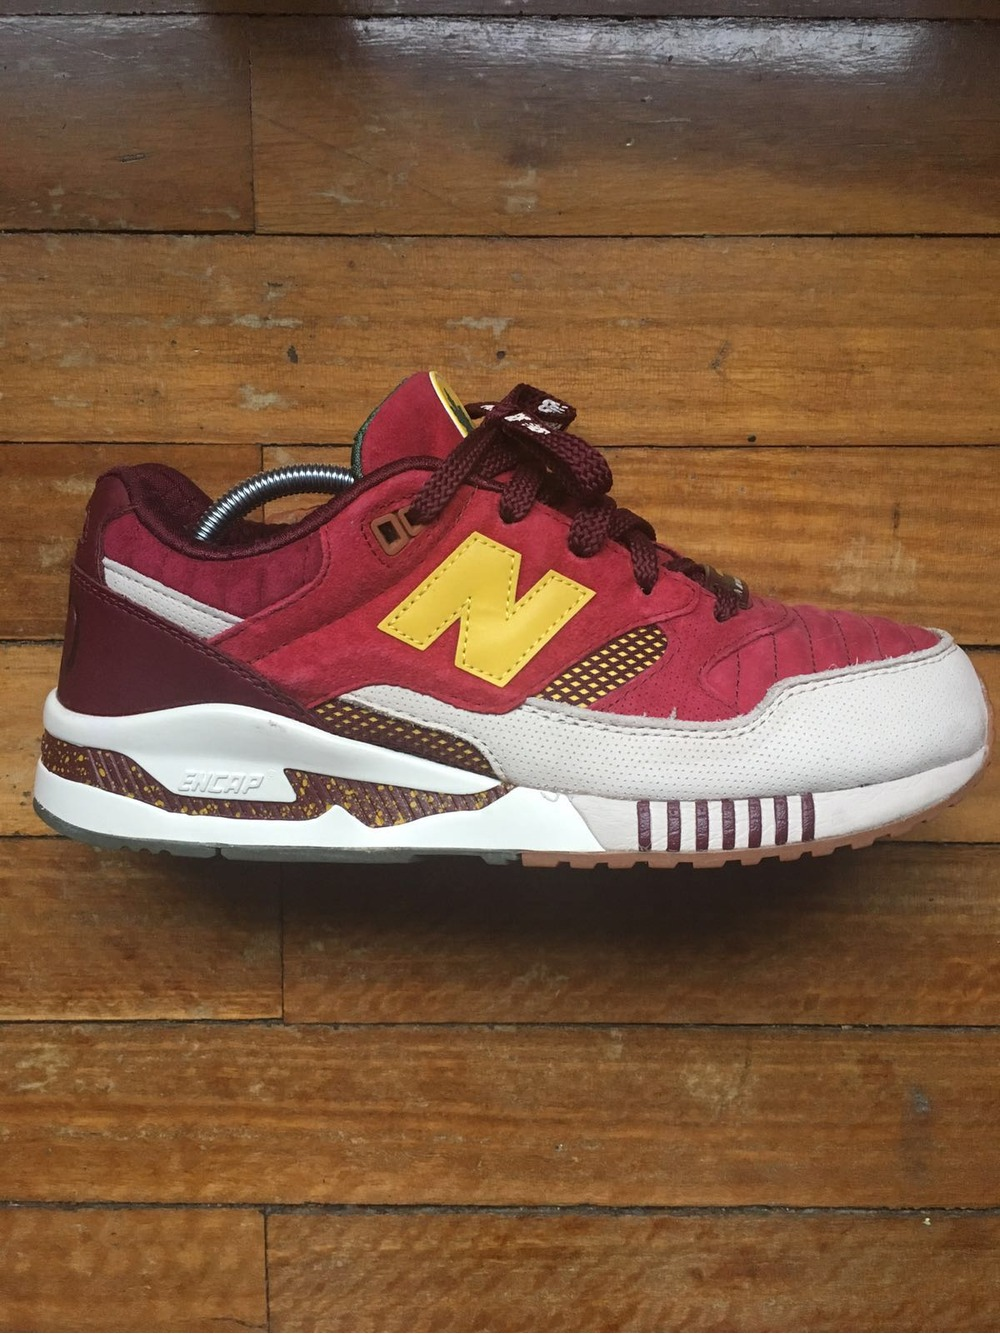 ronnie fieg x new balance 530 central park philly diet doctor dr